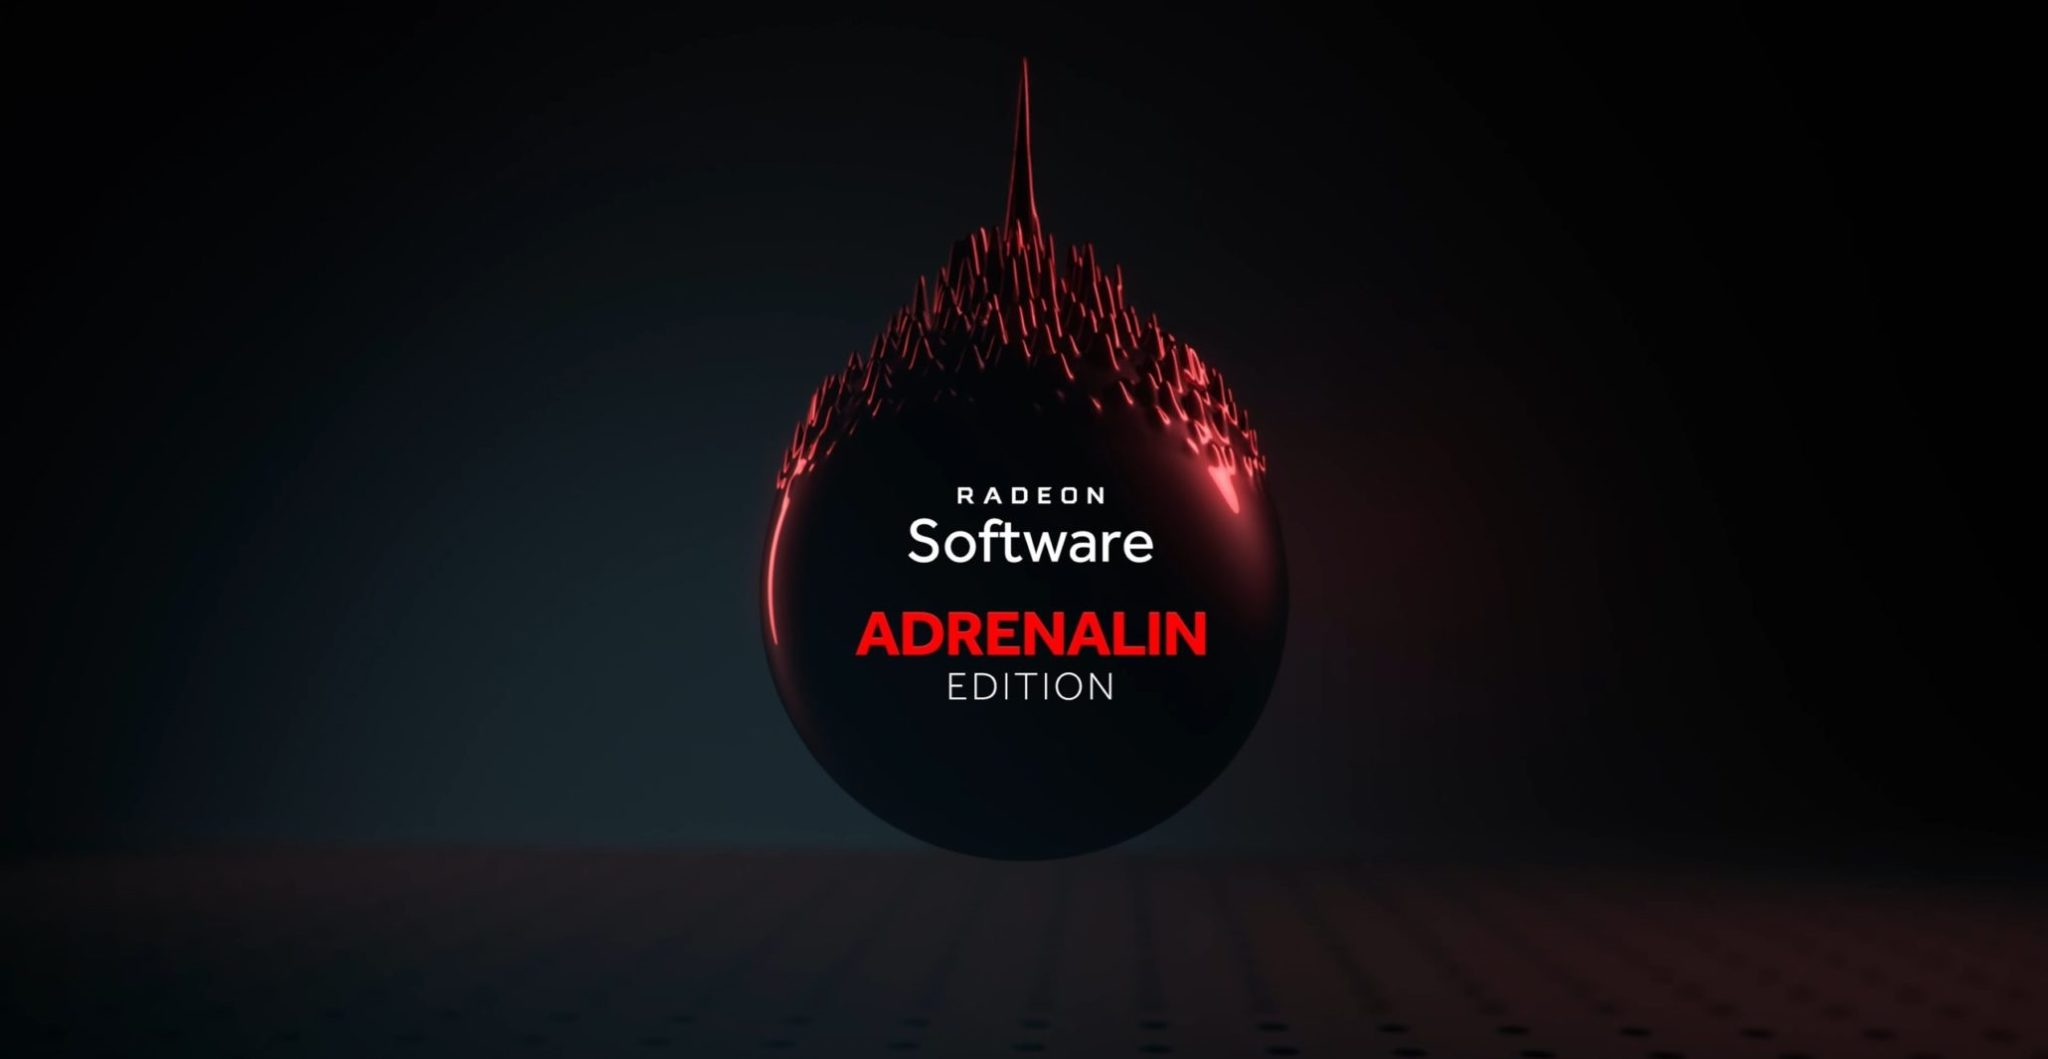 Radeon-Software-Adrenalin-Edition